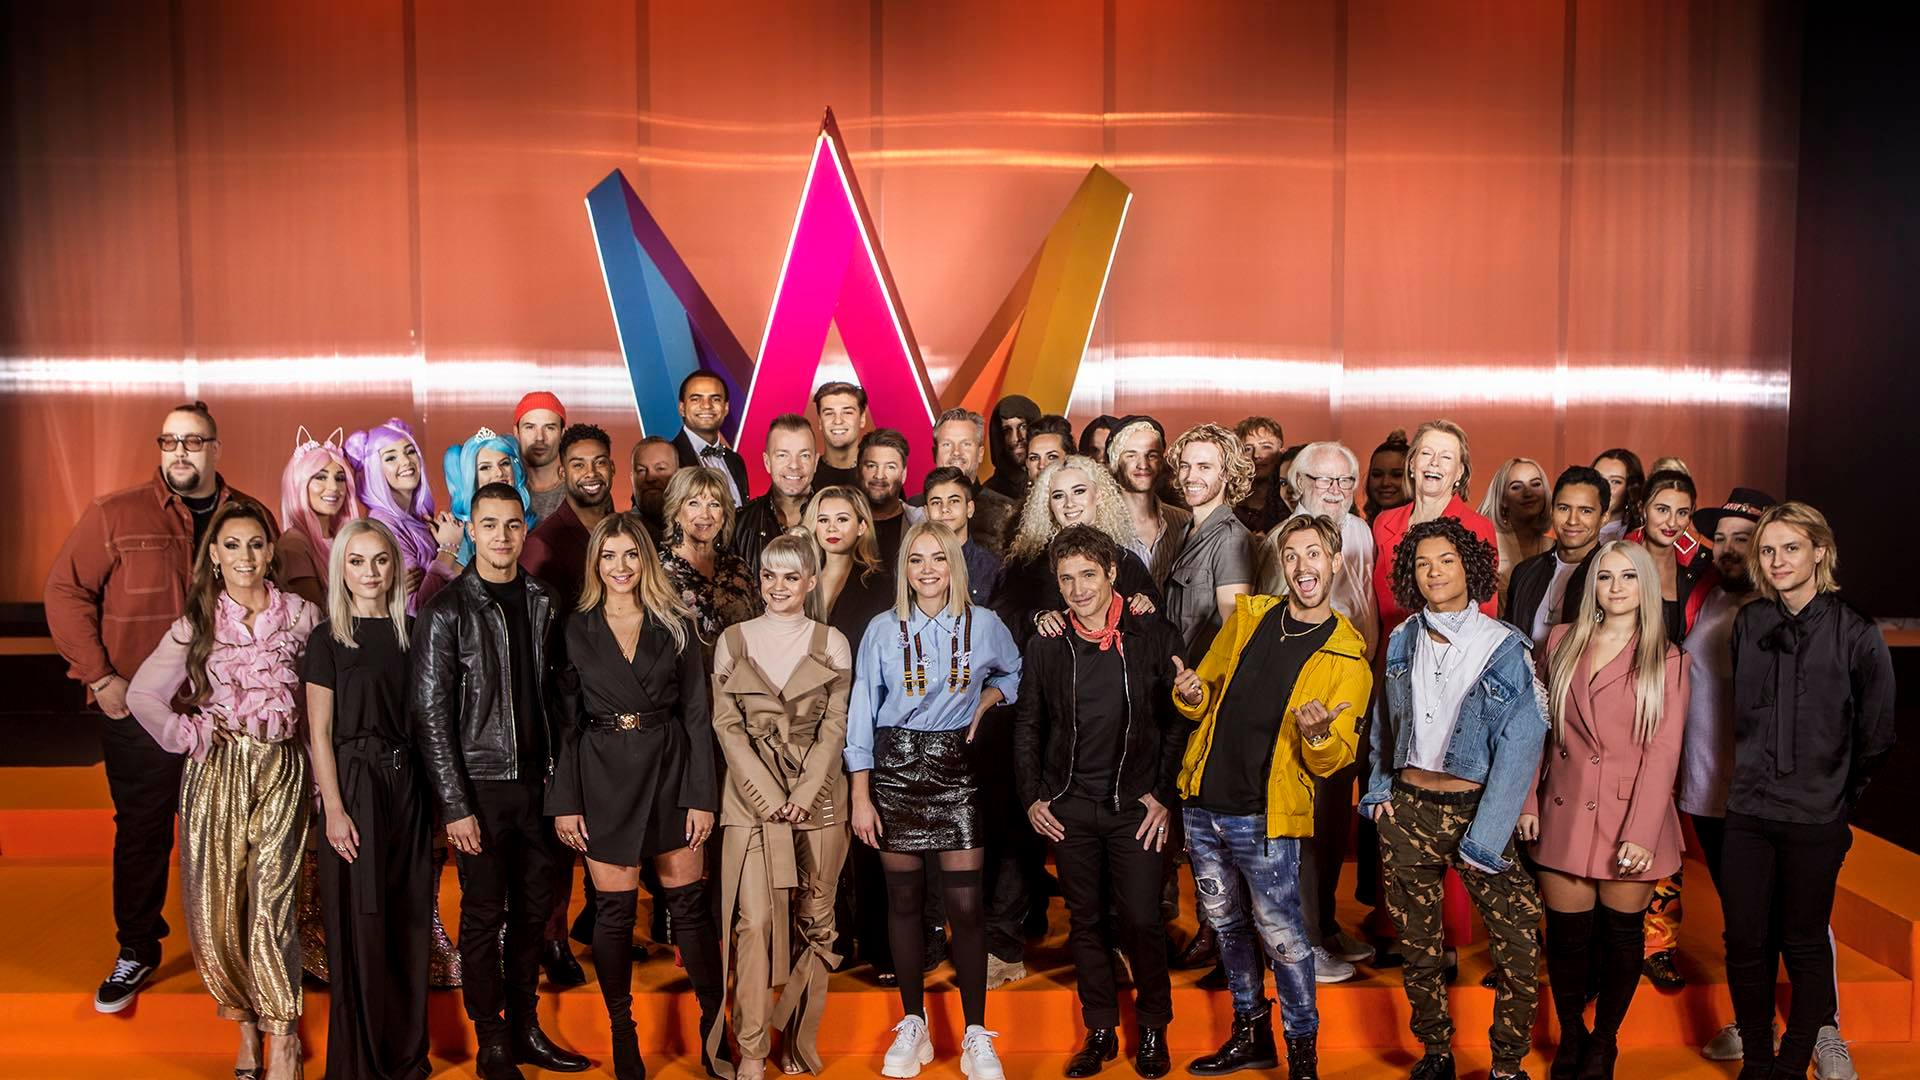 Group picture of all the contestants